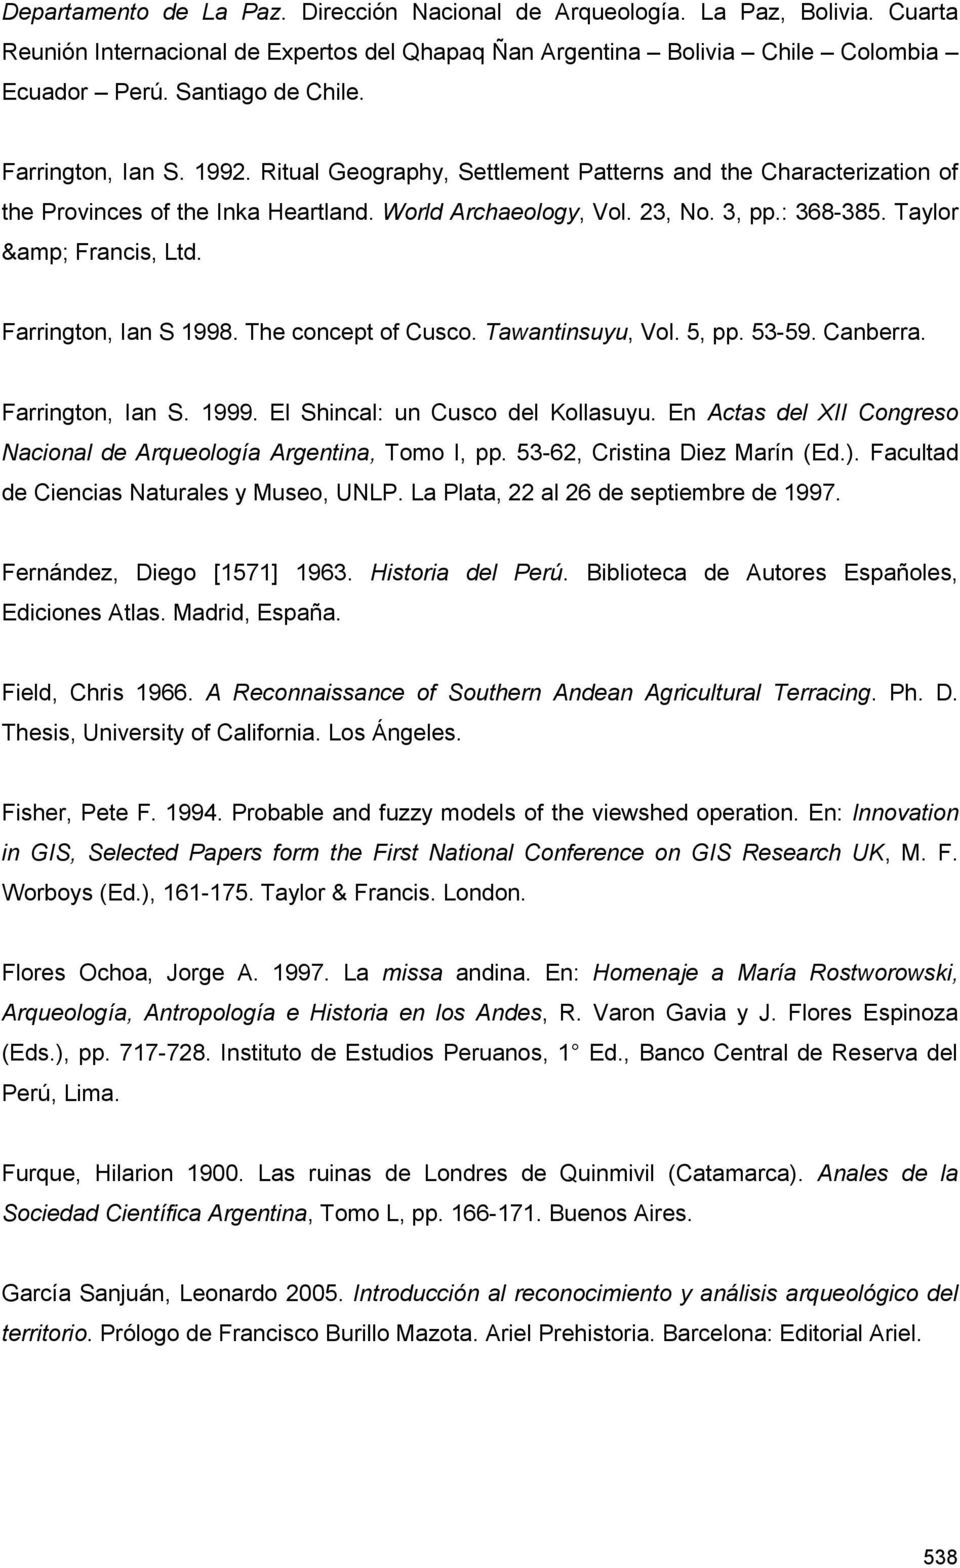 Farrington, Ian S 1998. The concept of Cusco. Tawantinsuyu, Vol. 5, pp. 53-59. Canberra. Farrington, Ian S. 1999. El Shincal: un Cusco del Kollasuyu.